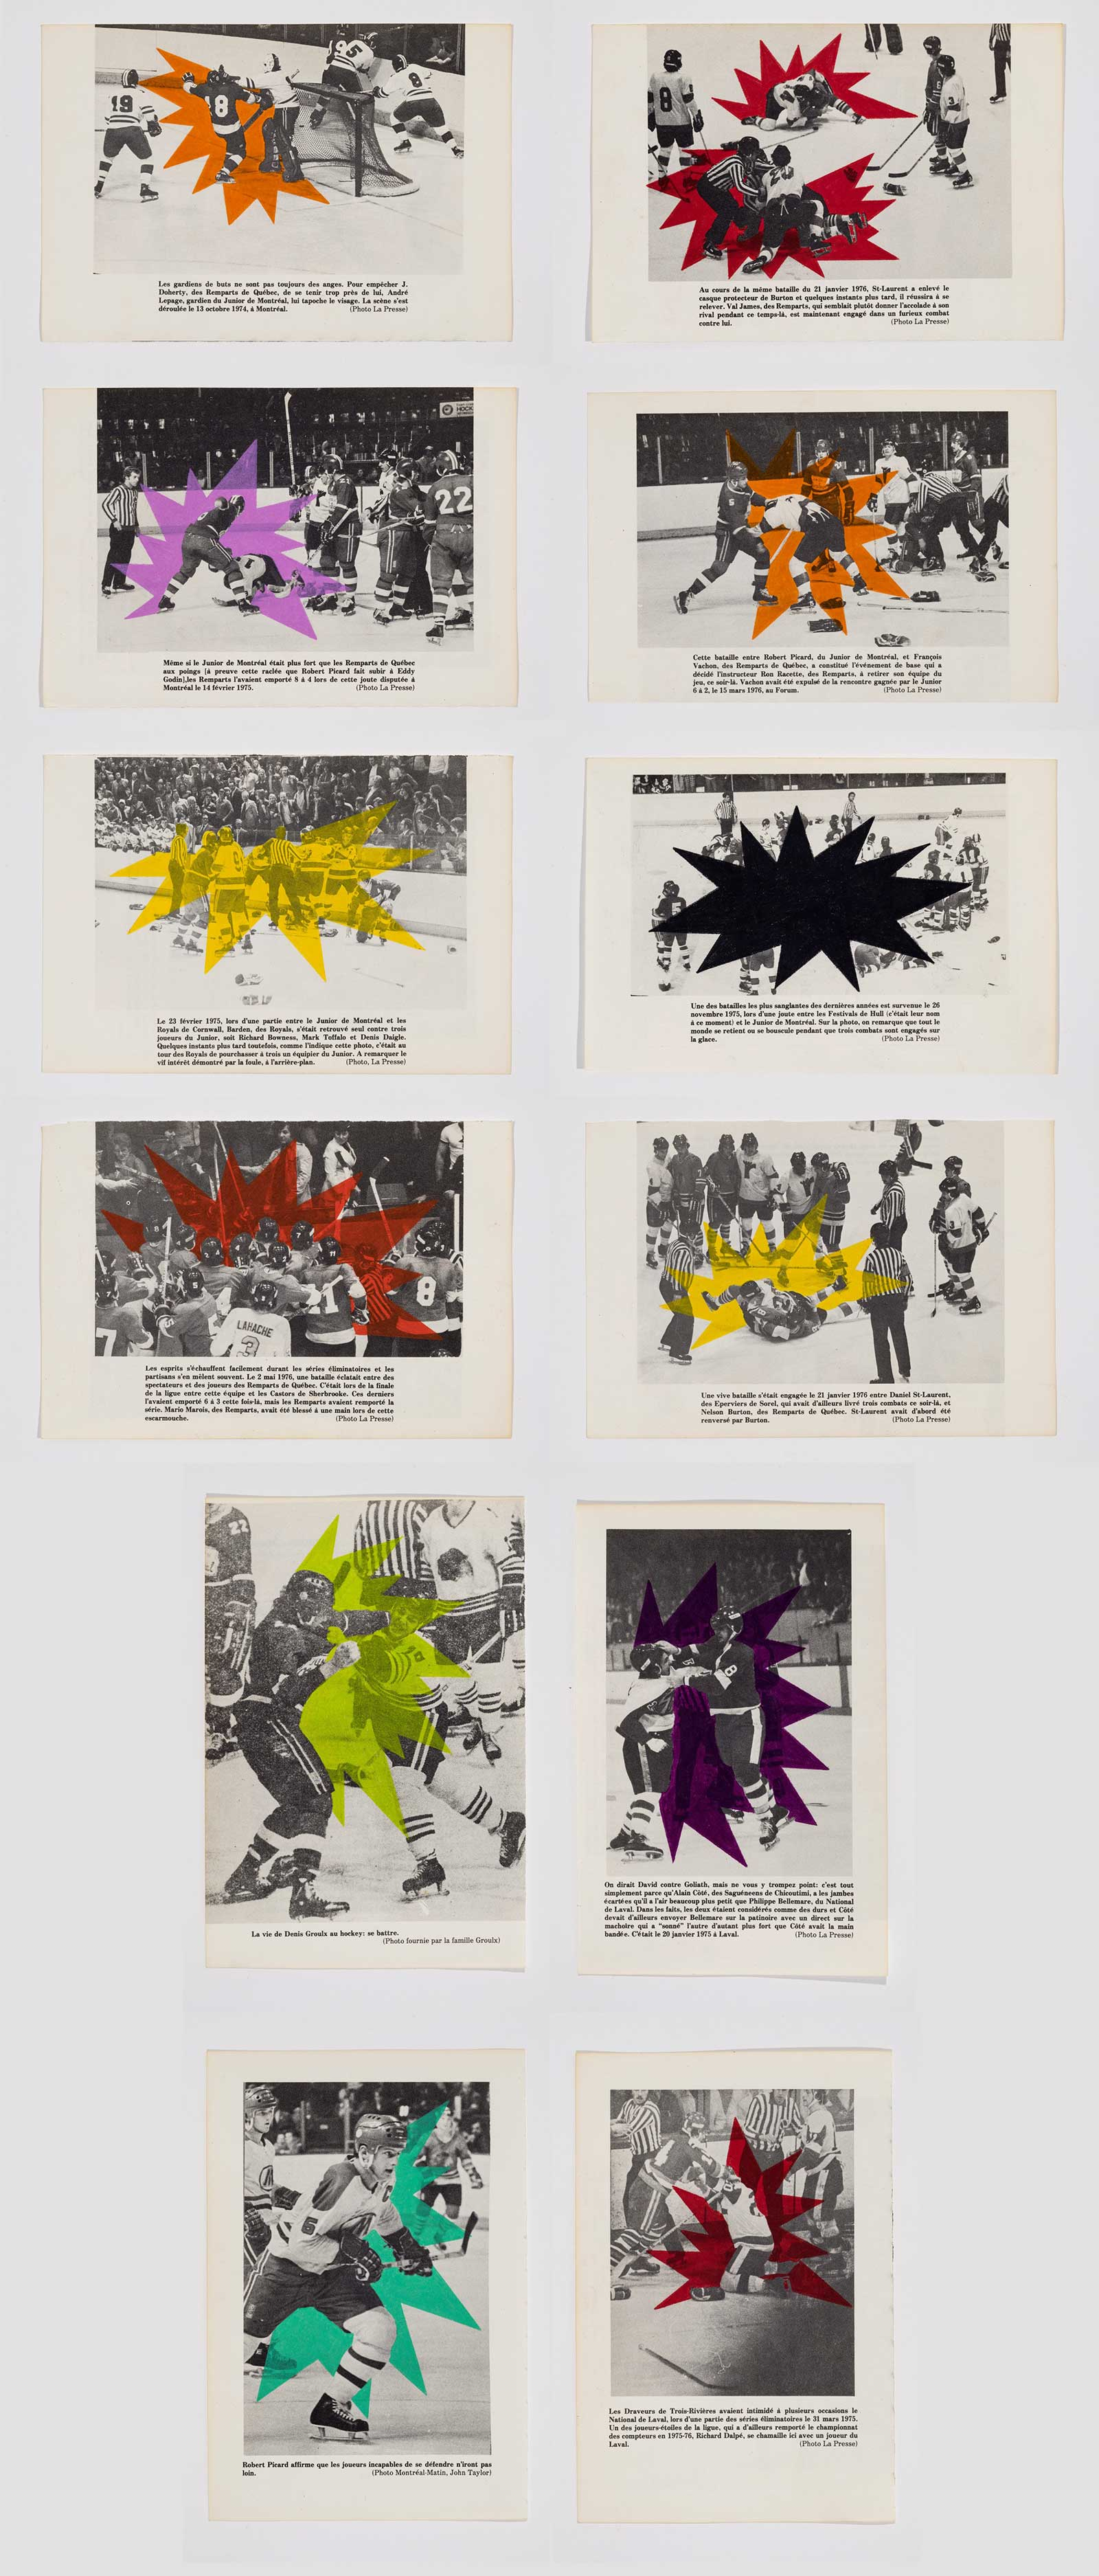 Presented inside a glass vitrine are twelve black and white magazine reproductions of violence and fighting in hockey. Overtop each brawl, the artist has drawn an animated explosion, each in a different bright colour, such as pink, red, yellow, purple, and green. Below each image is a text describing the brawl depicted in the image.